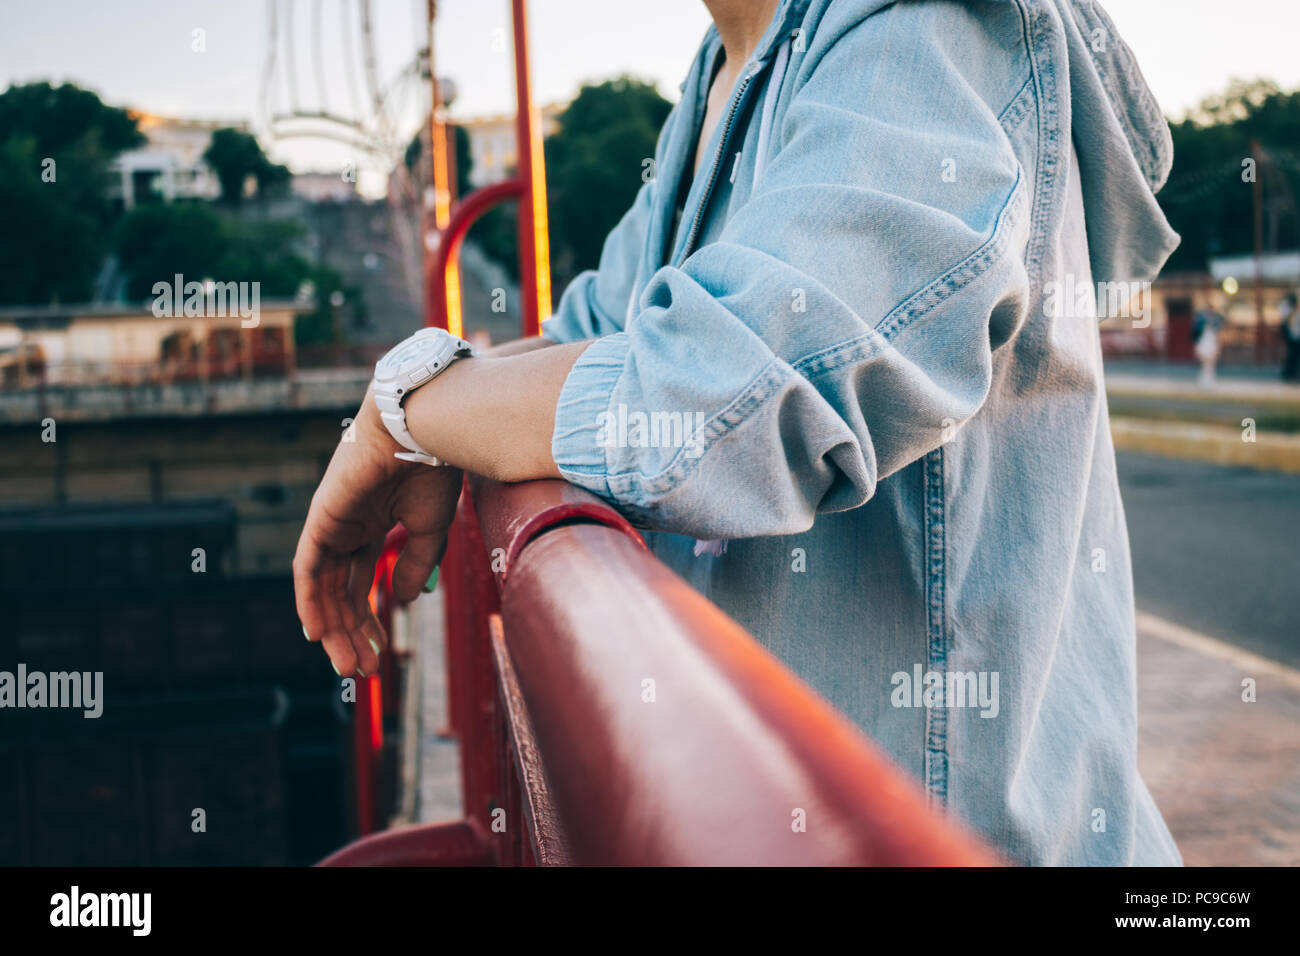 Close-up young woman in jeans jacket standing next to bridge parapet. Candid lifestyle photo of female hands wearing wristwatches leaning on railing c - Stock Image